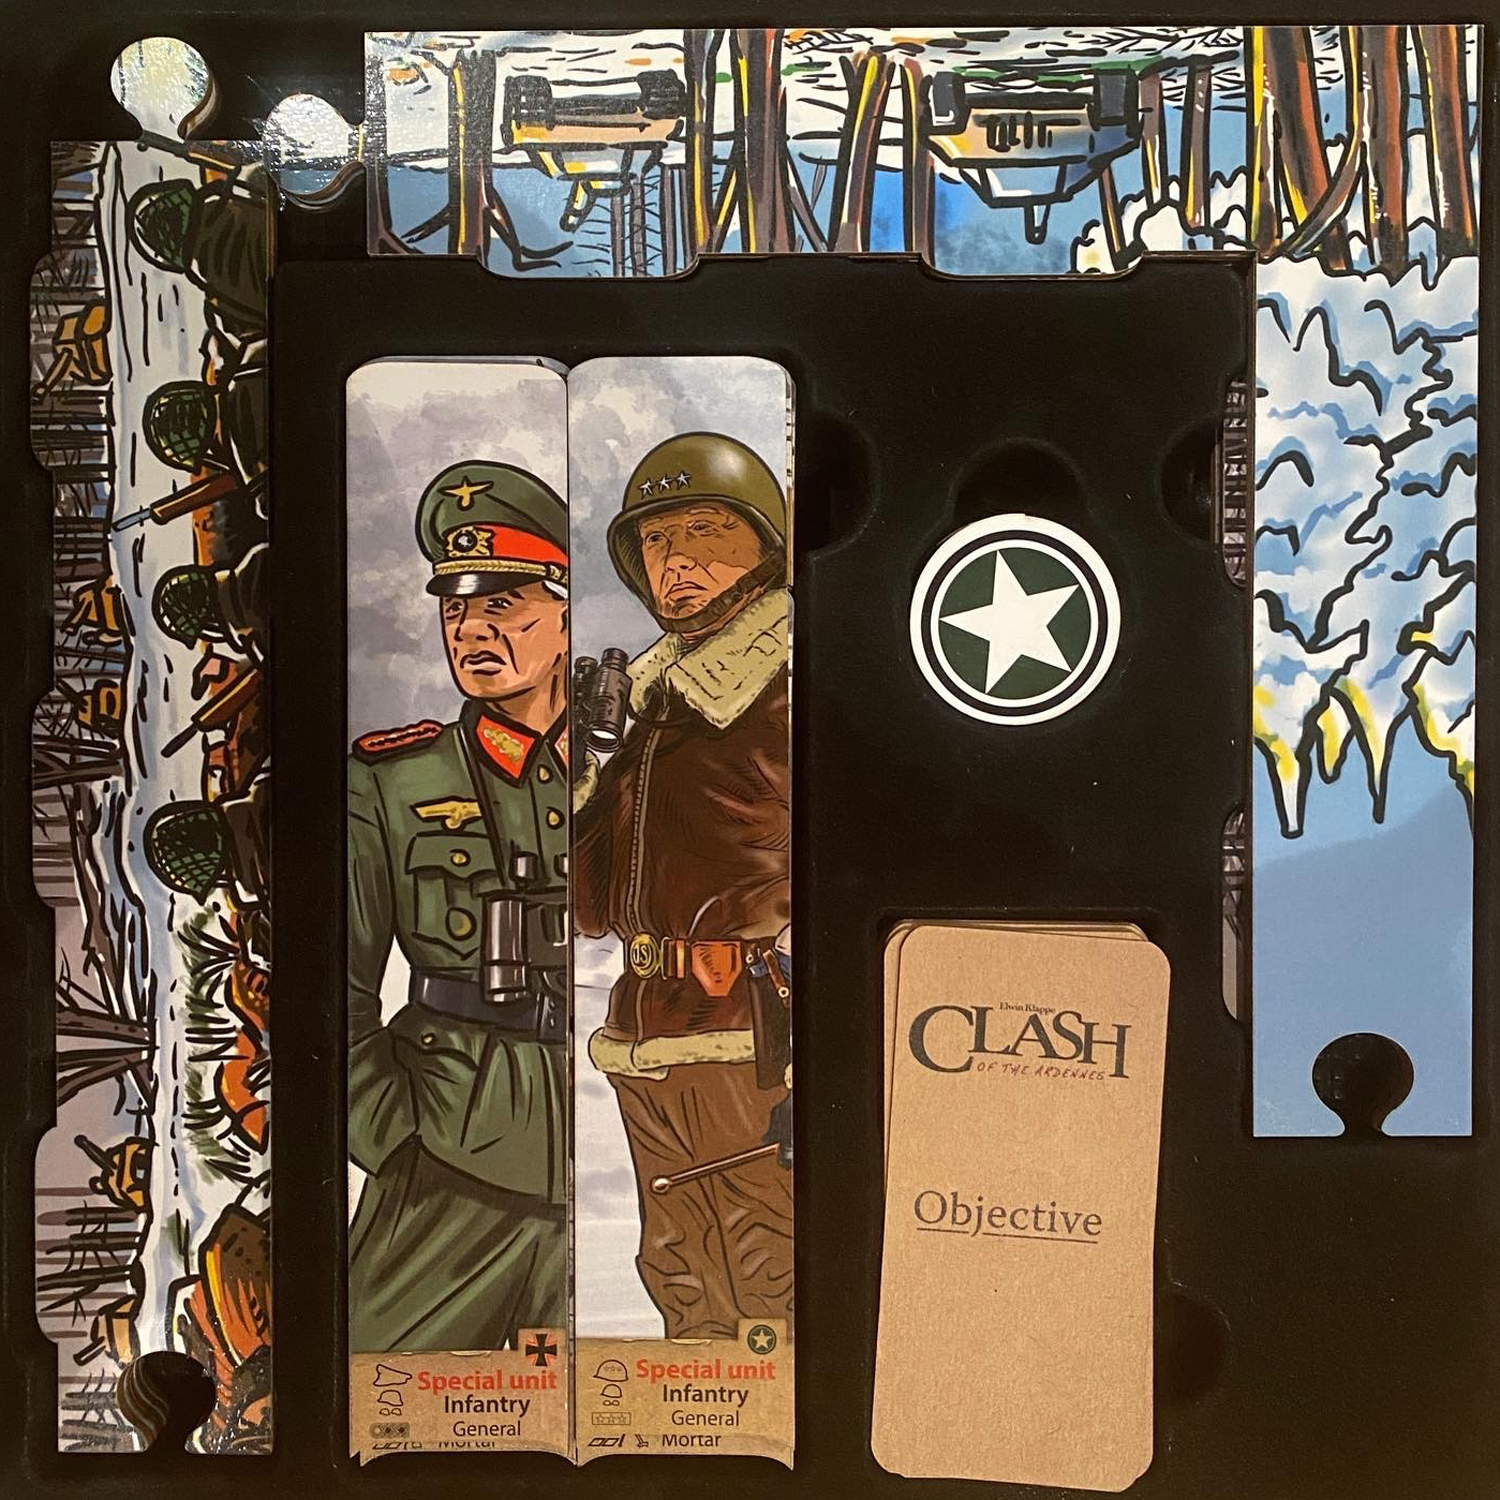 Clash of the Ardennes Box Insert Image © Board Game Review UK